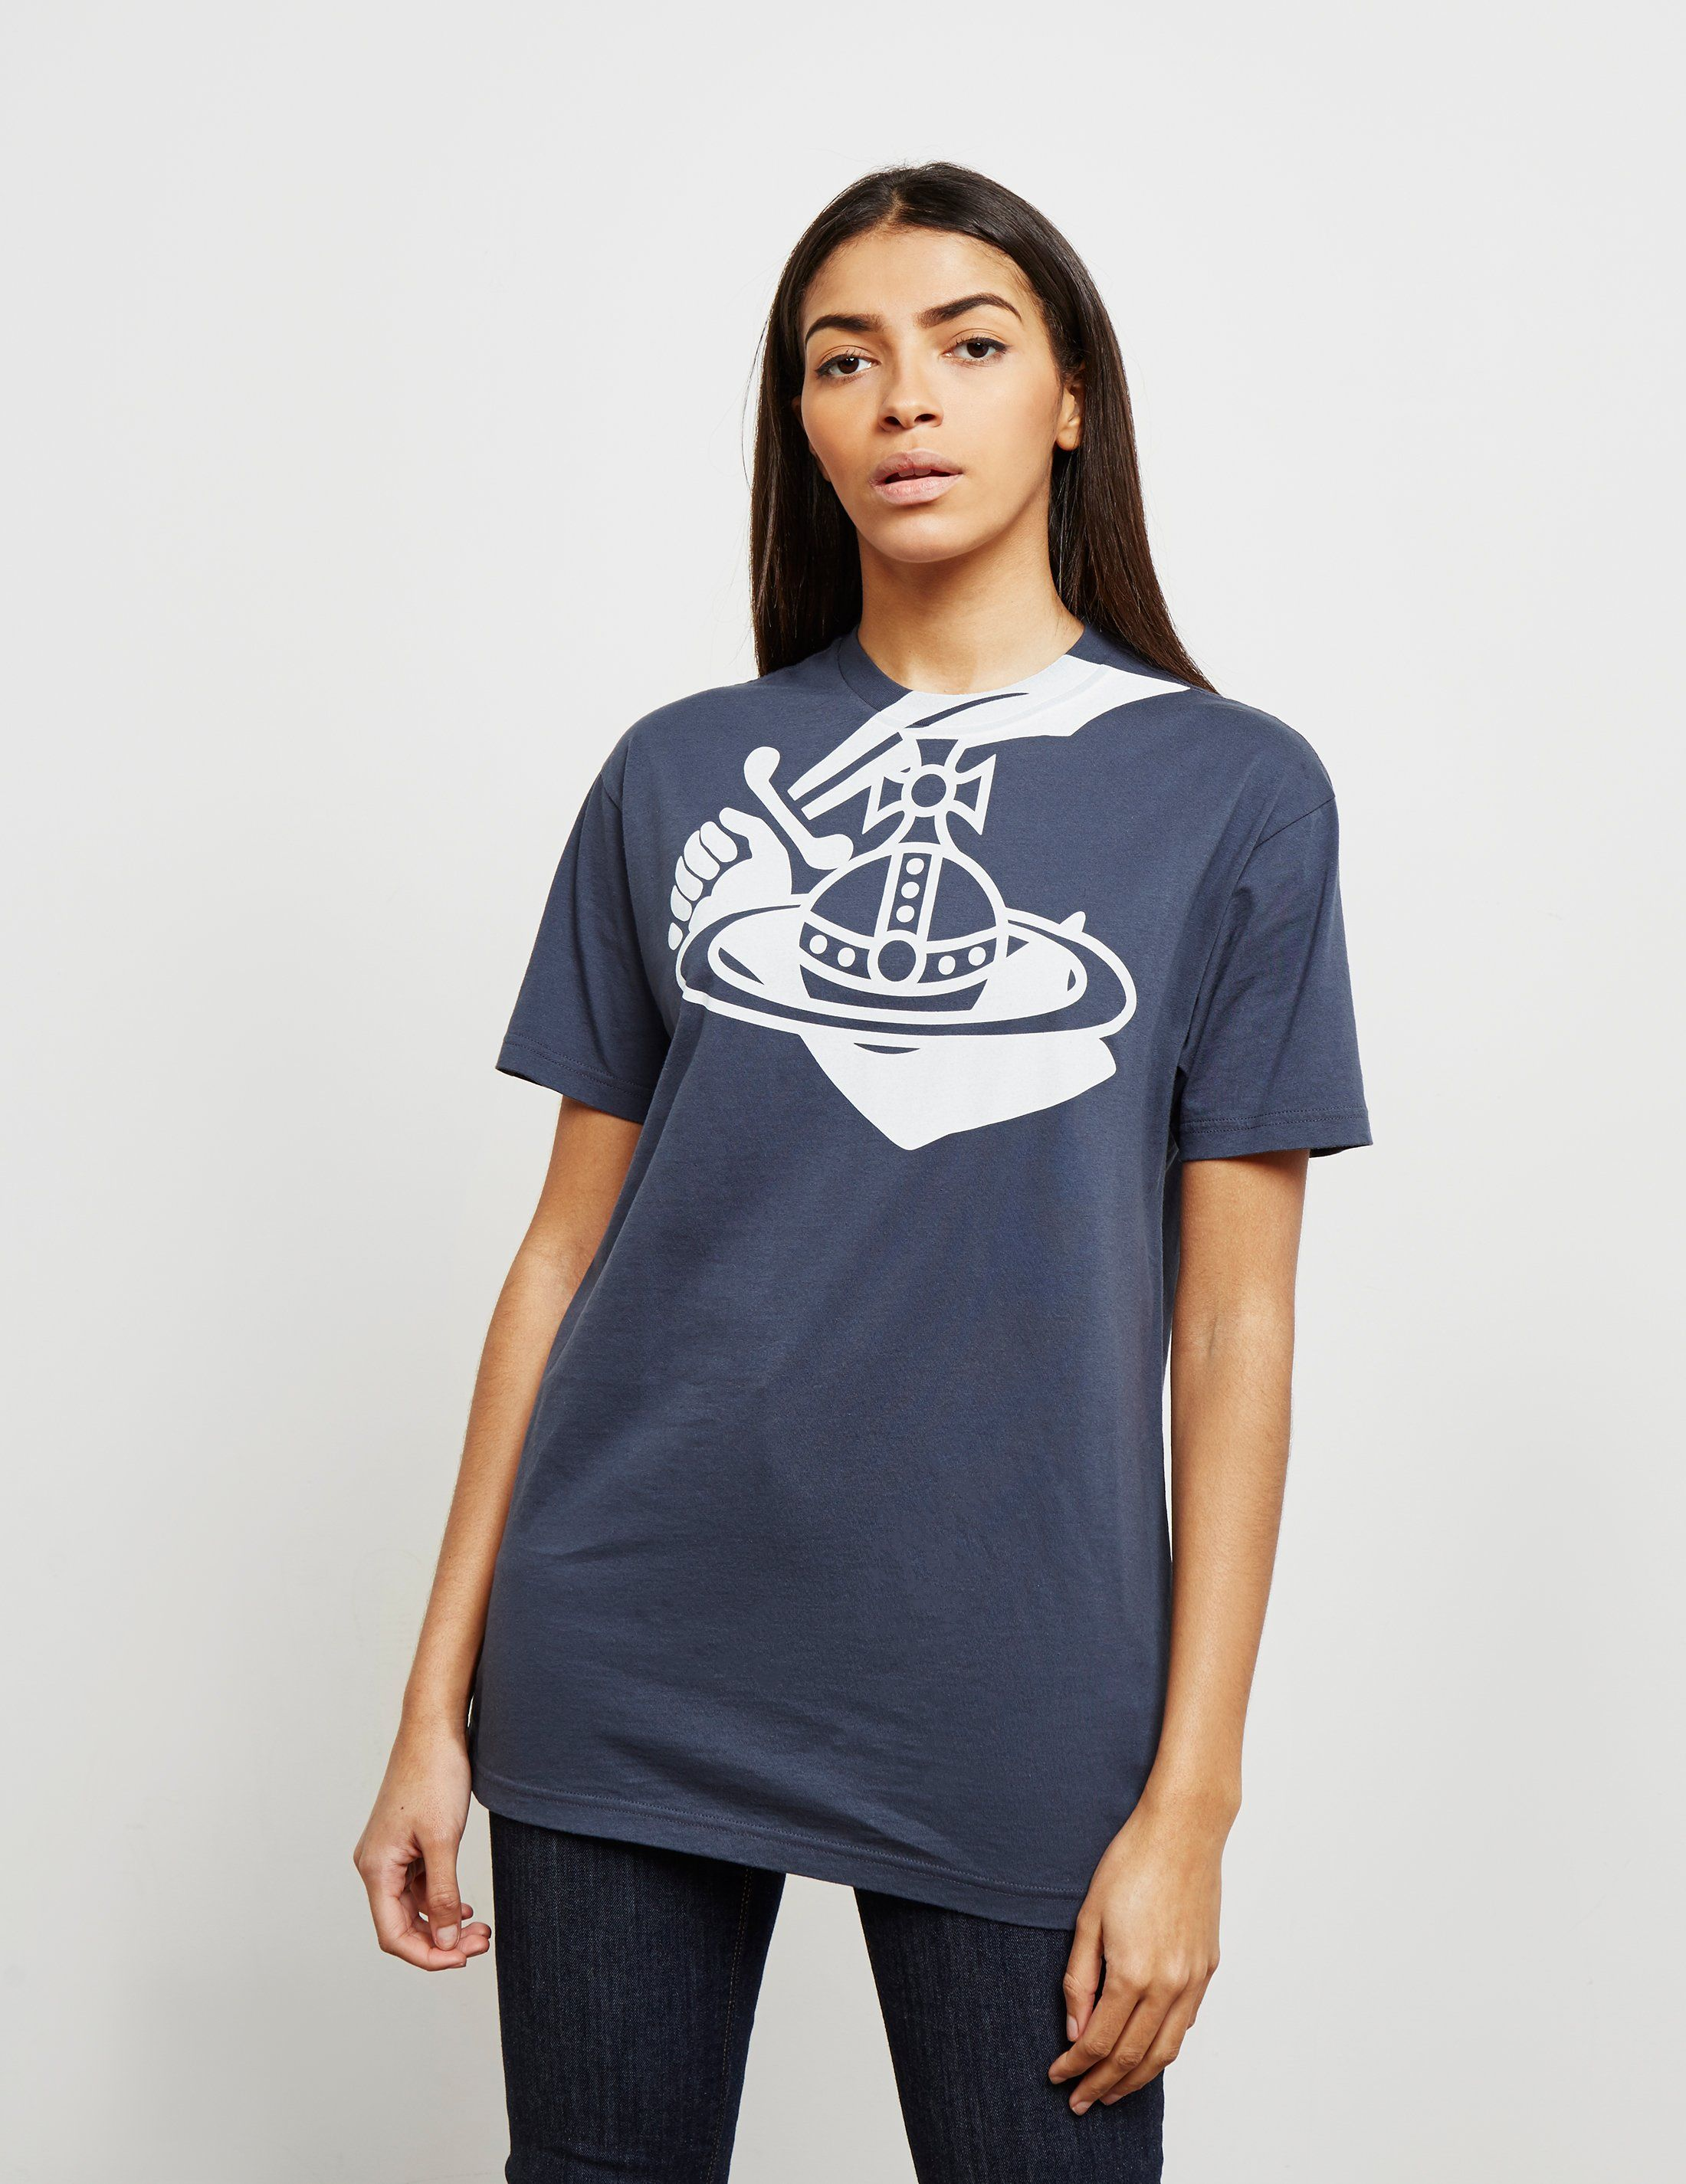 Vivienne Westwood Anglomania Orb Neck Short Sleeve T-Shirt